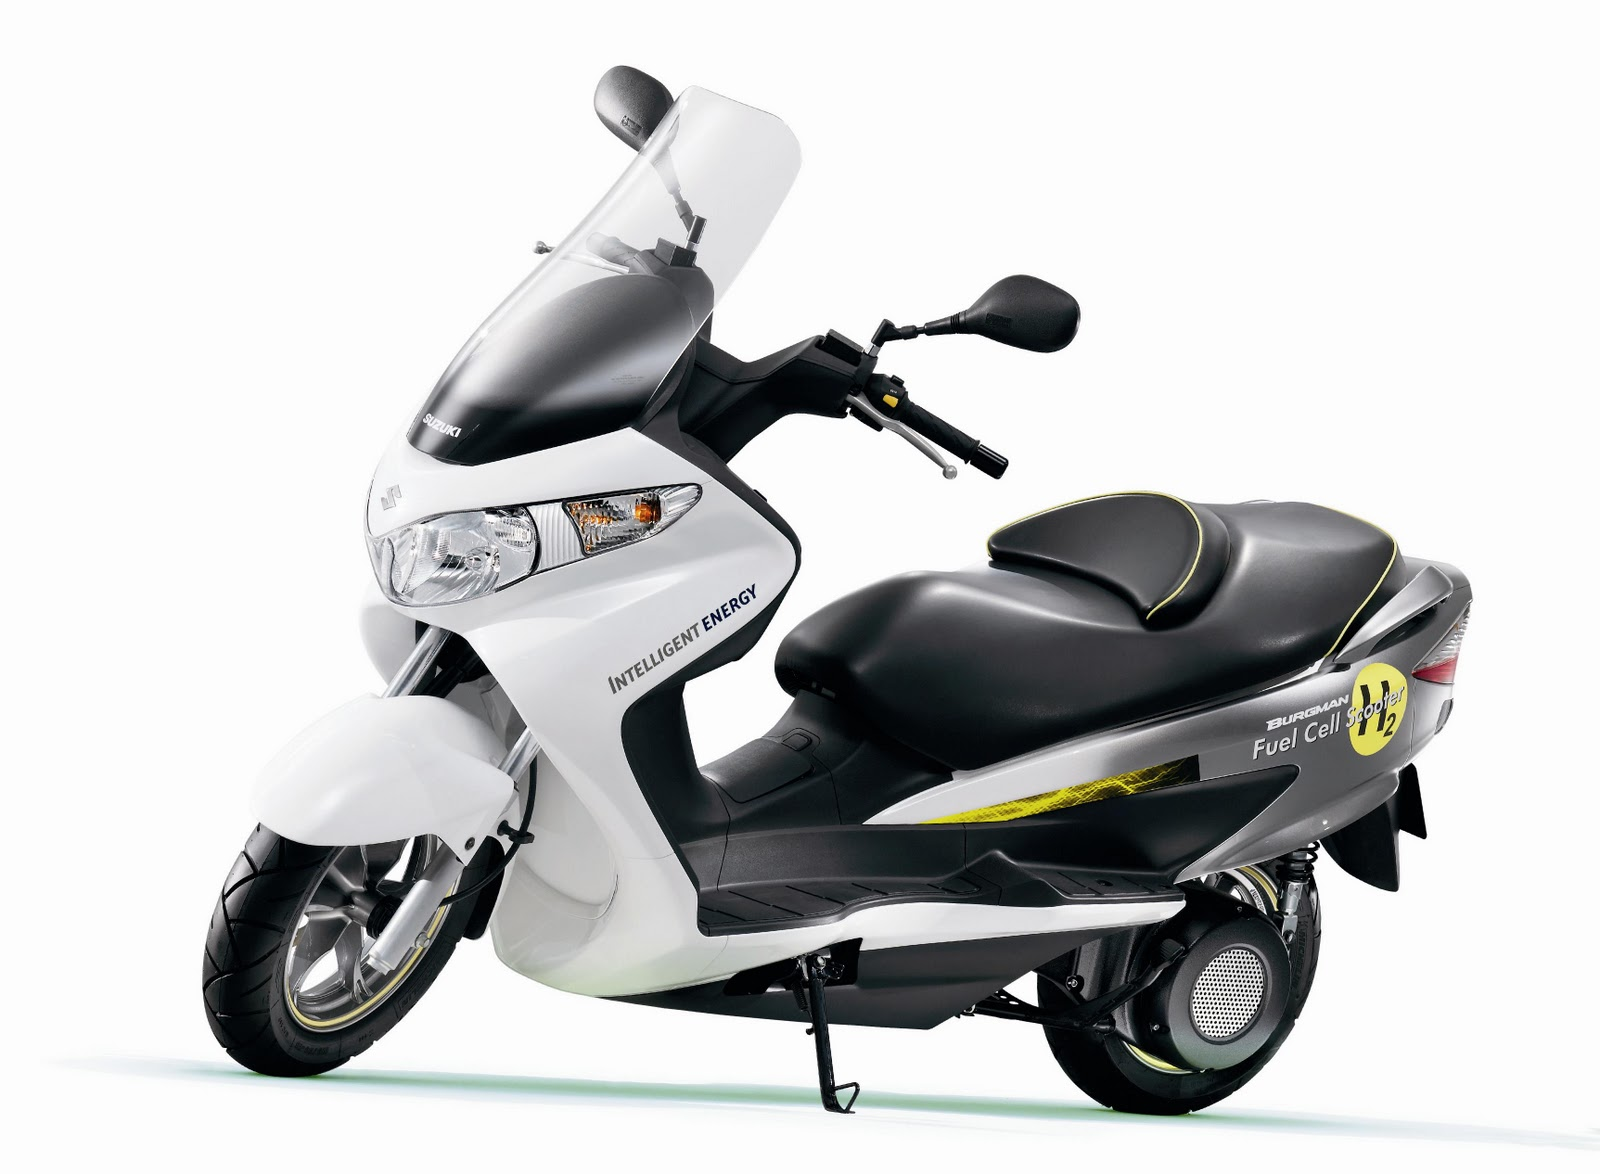 This became the first scooter